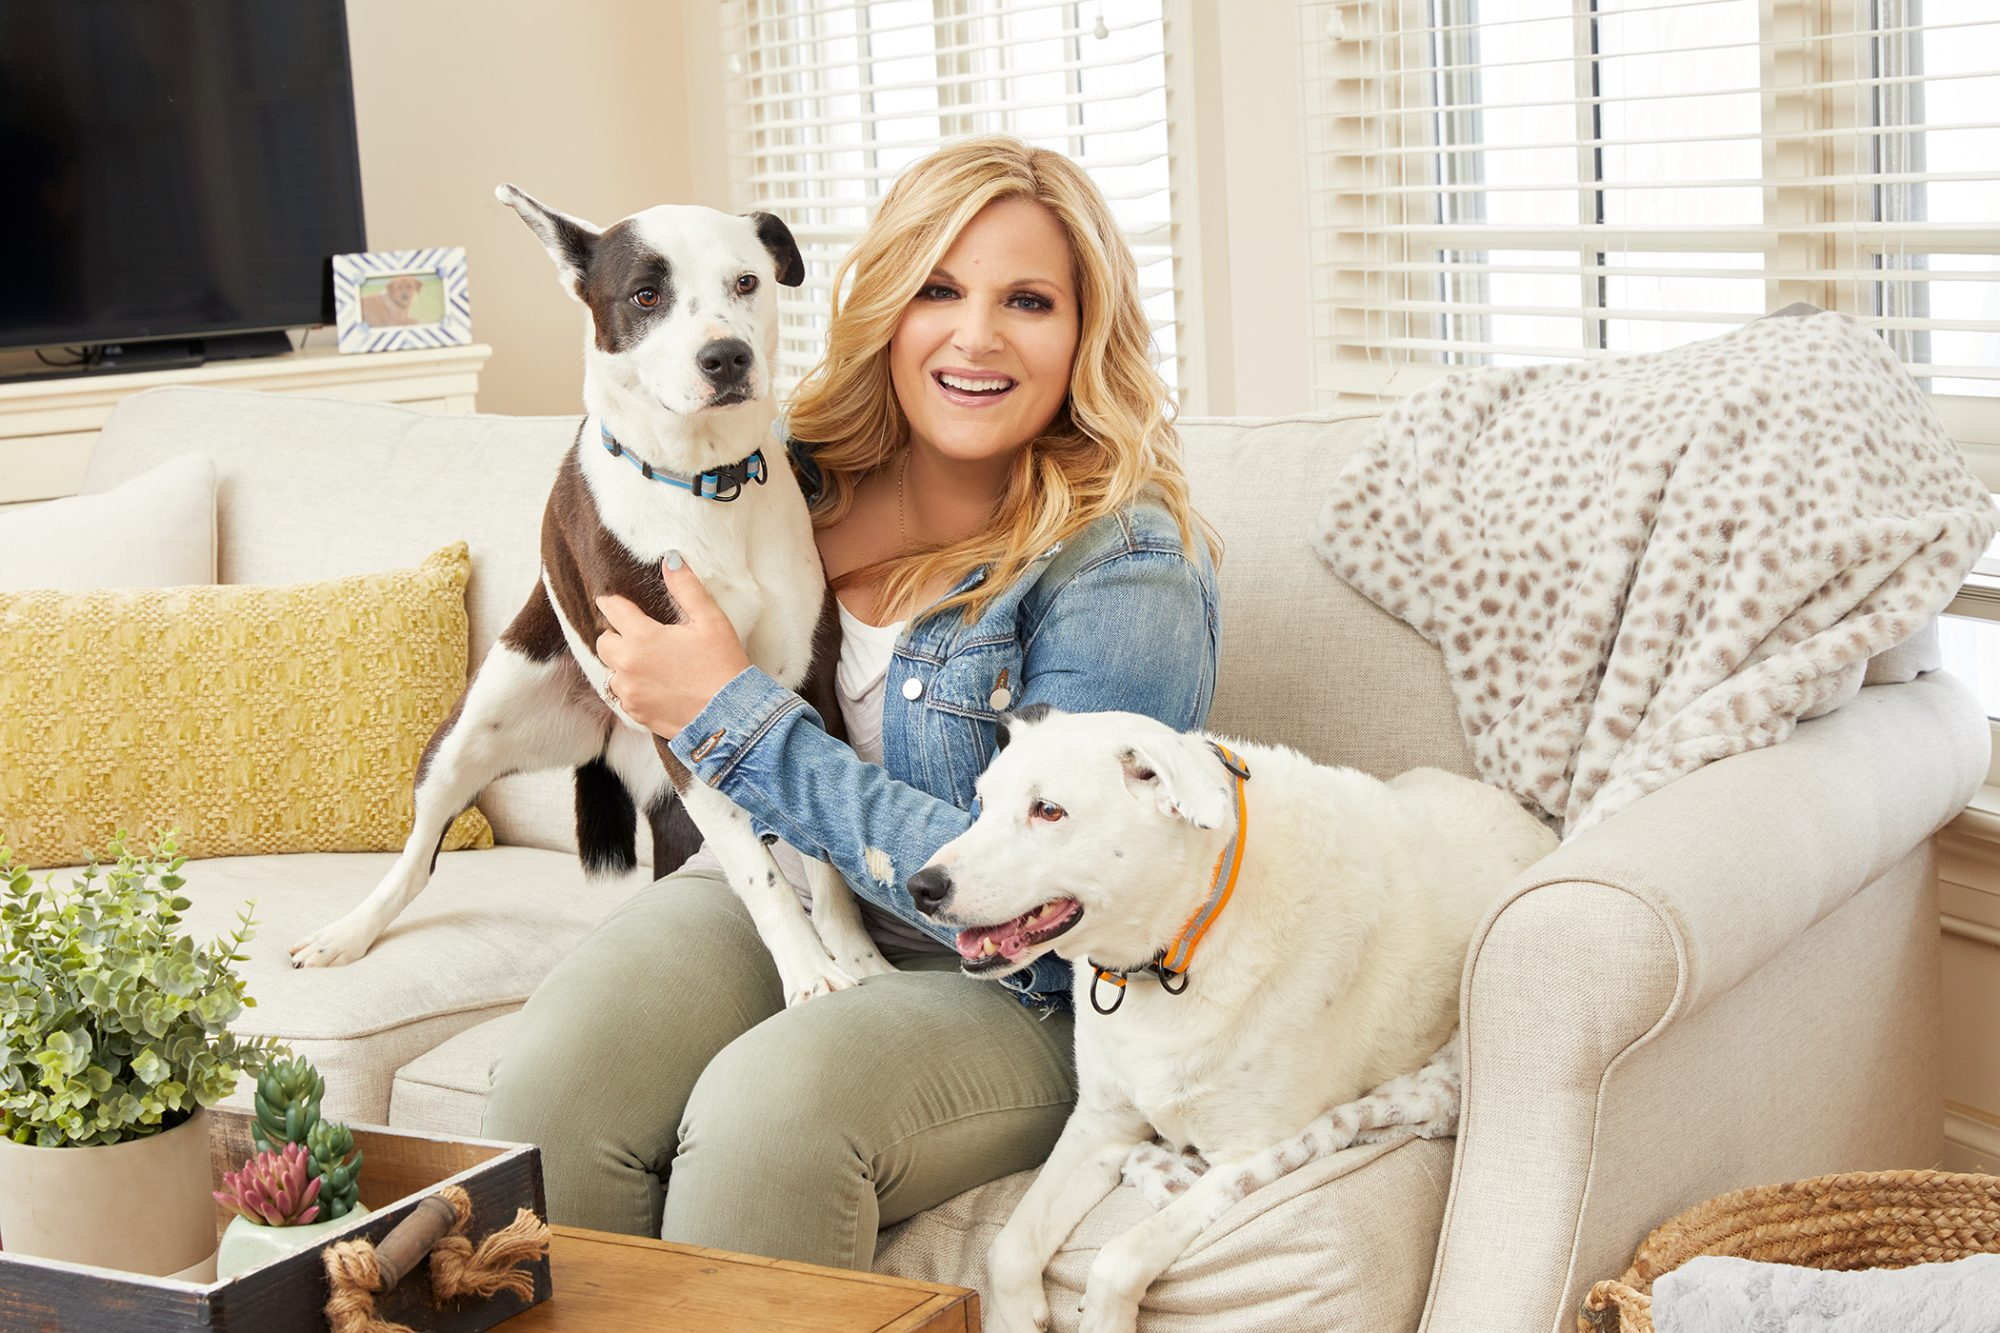 Influencer Trisha Yearwood poses with two adult dogs in living room